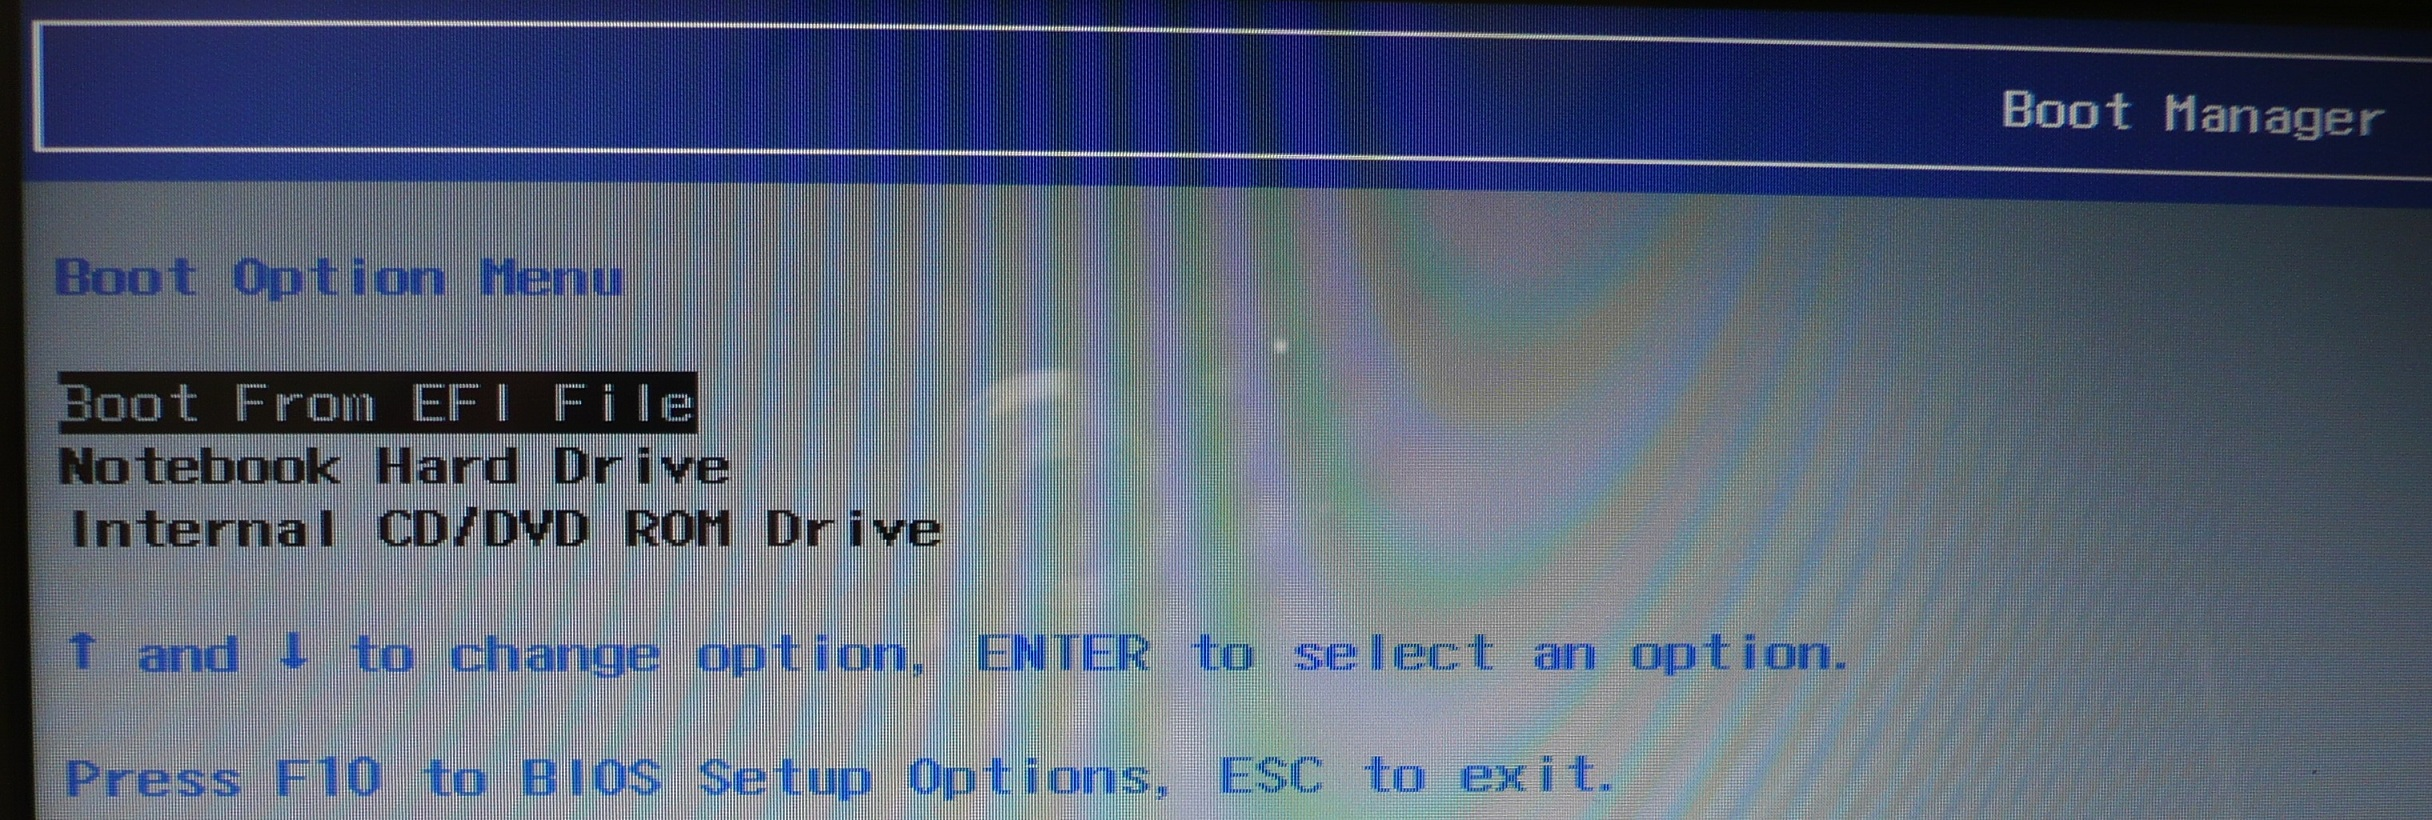 HP-Pavilion G6 2005ax HEATING up QUICKLY    - eehelp com